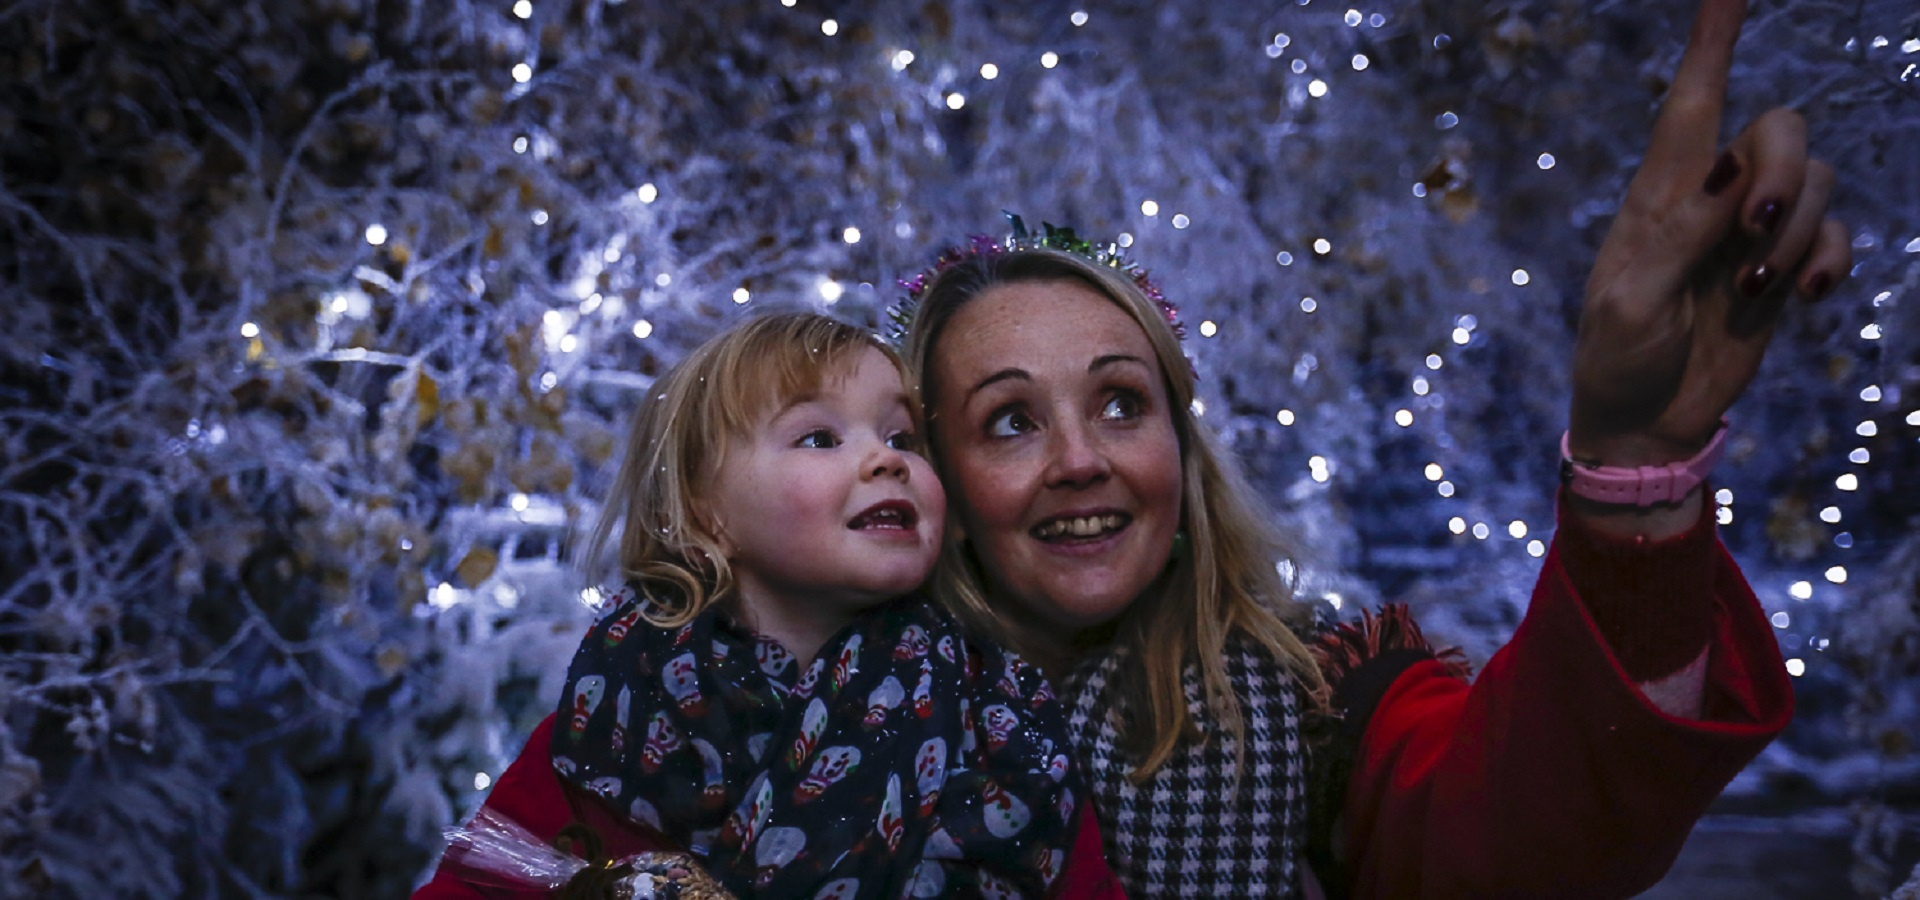 A woman and child enjoy The Christmas Experience at Lotherton, Leeds - credit Zagni Photography